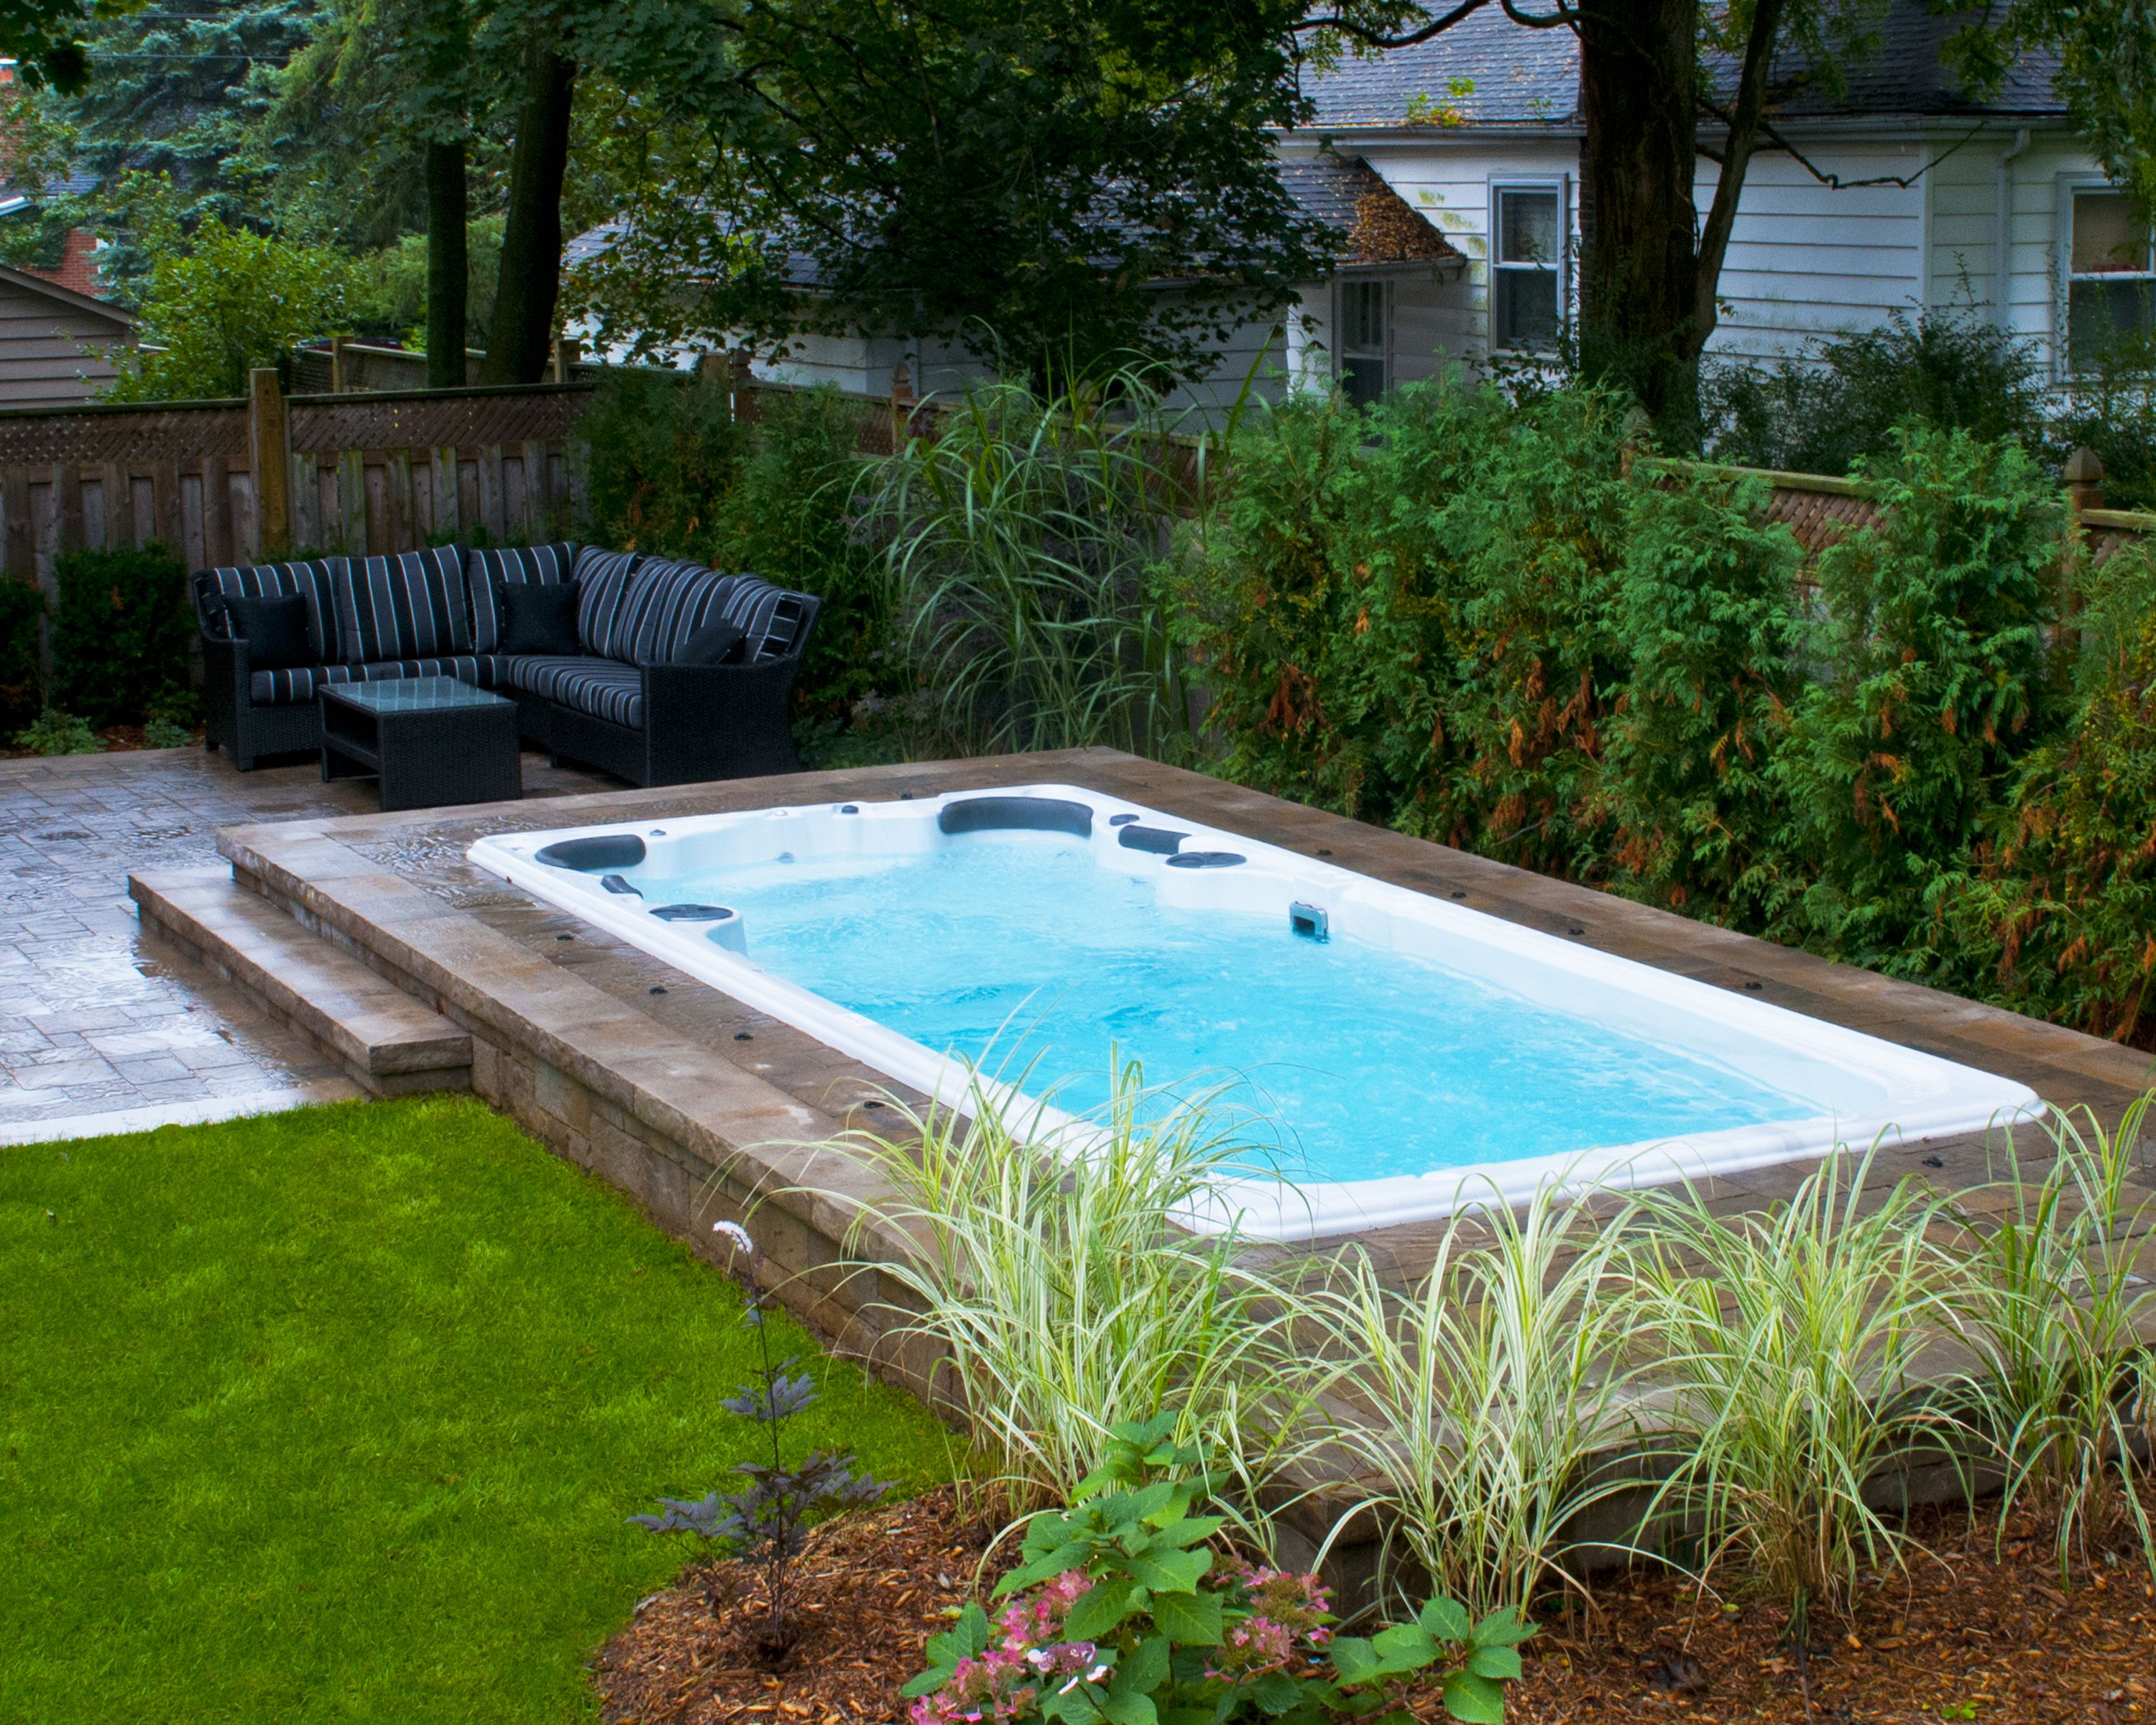 Hydropool self cleaning swim spa installed in ground with for Backyard inground pool designs